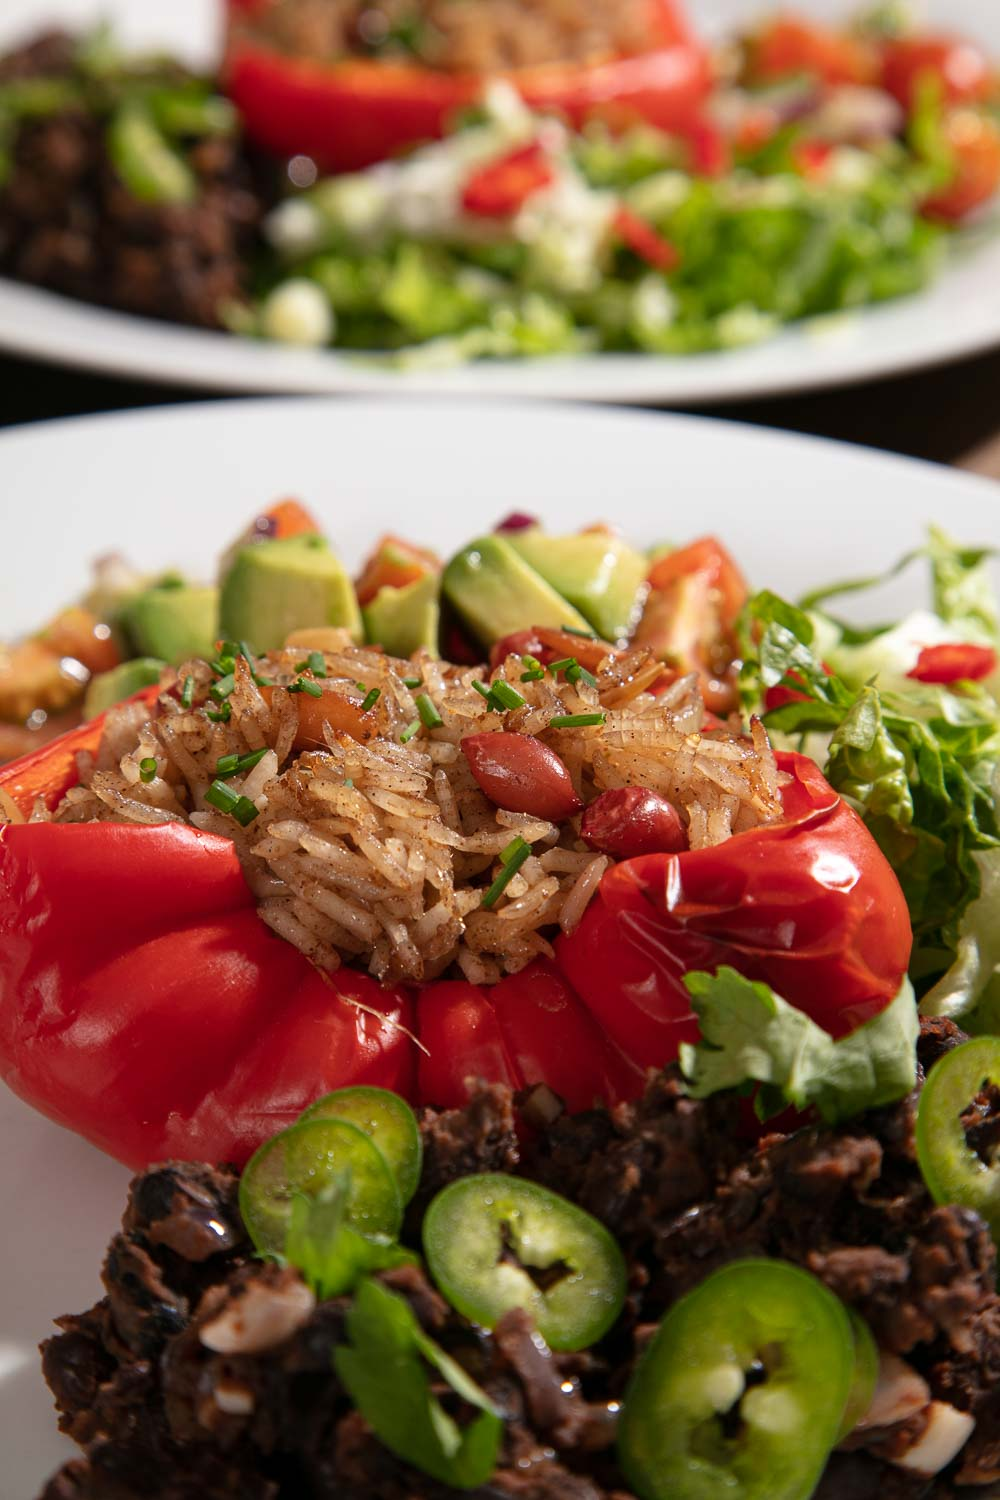 A plump red pepper stuffed with spiced rice. Served with refried black beans and avocado salsa.